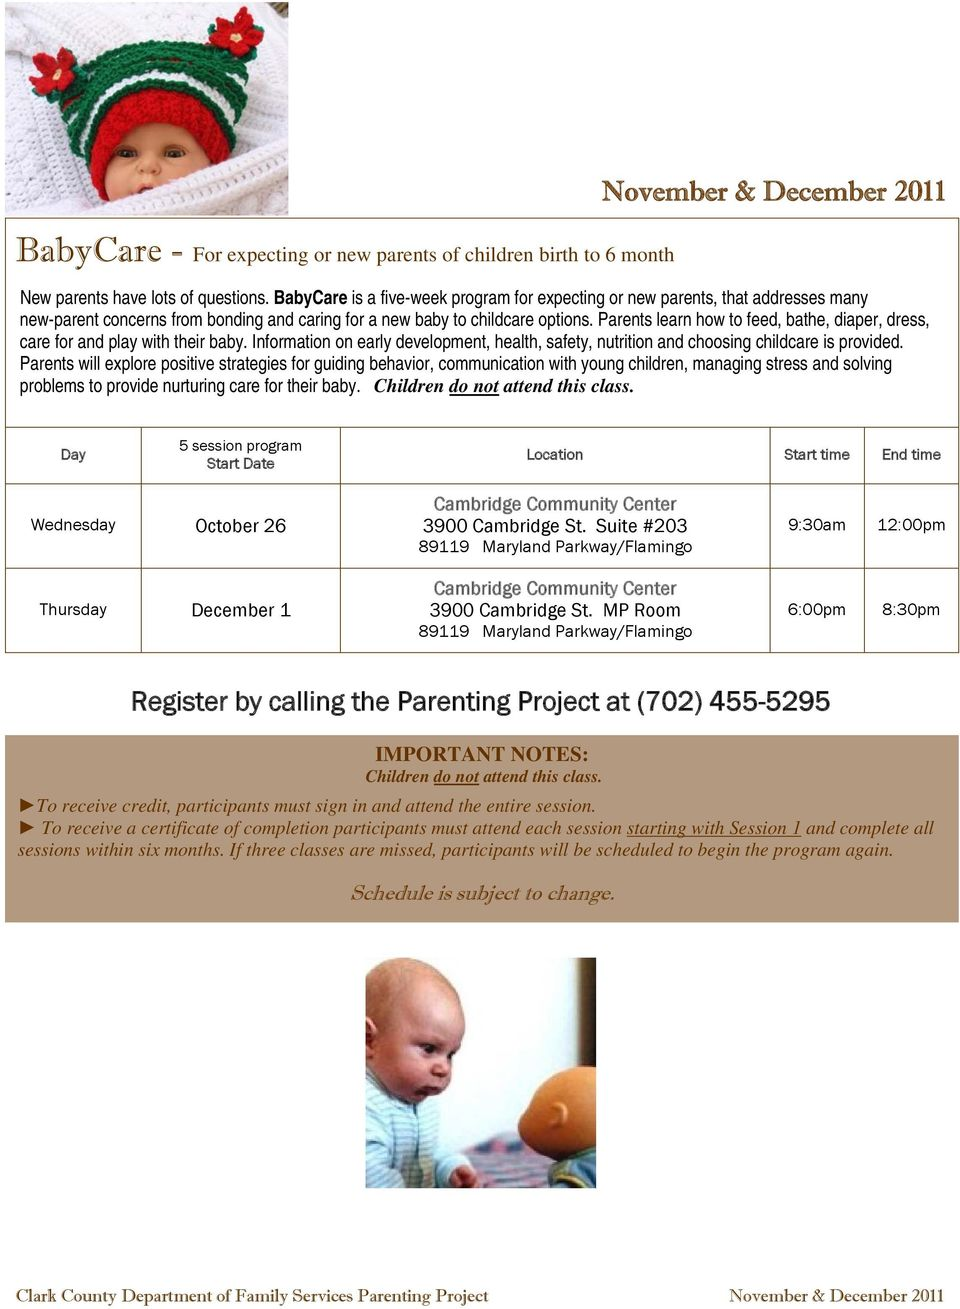 Parents learn how to feed, bathe, diaper, dress, care for and play with their baby. Information on early development, health, safety, nutrition and choosing childcare is provided.